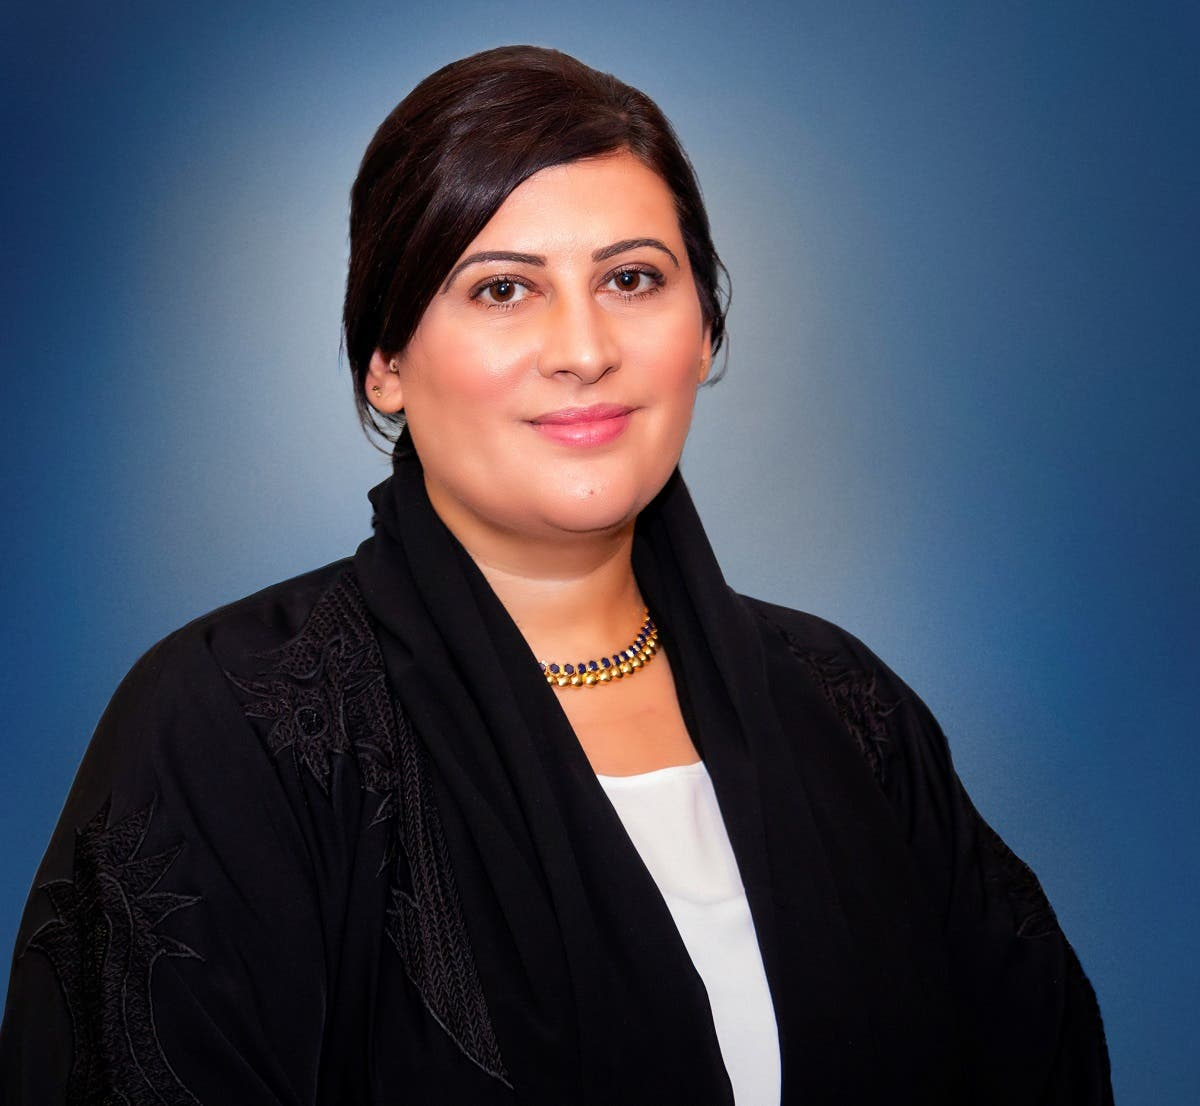 Manal Ataya, Director-General of Sharjah Museums Authority (SMA). (Supplied)